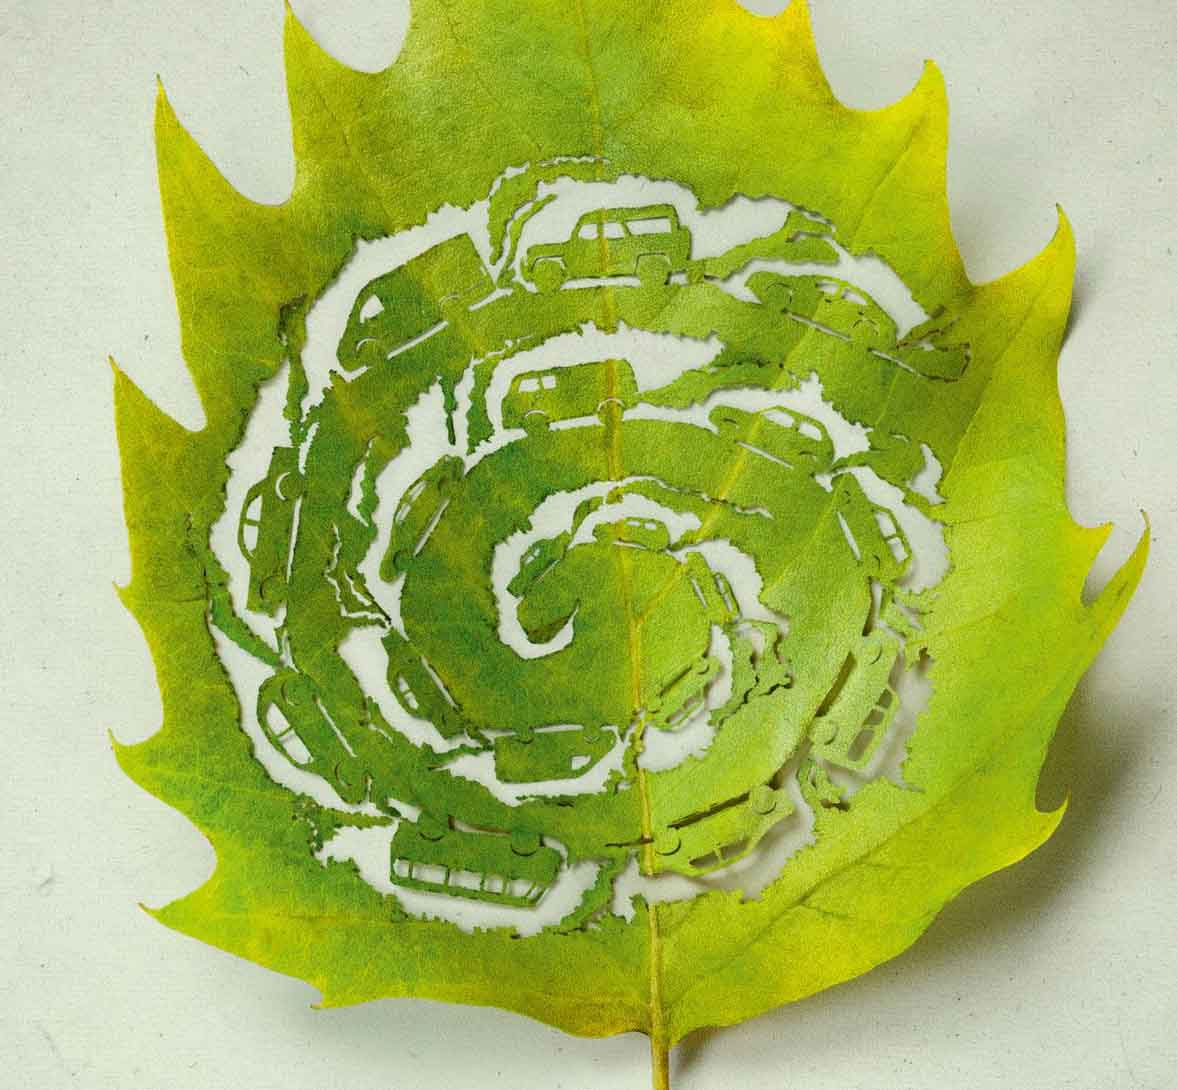 Amazing Leaf Carving Art Photography 7 Amazing Leaf Carving Art